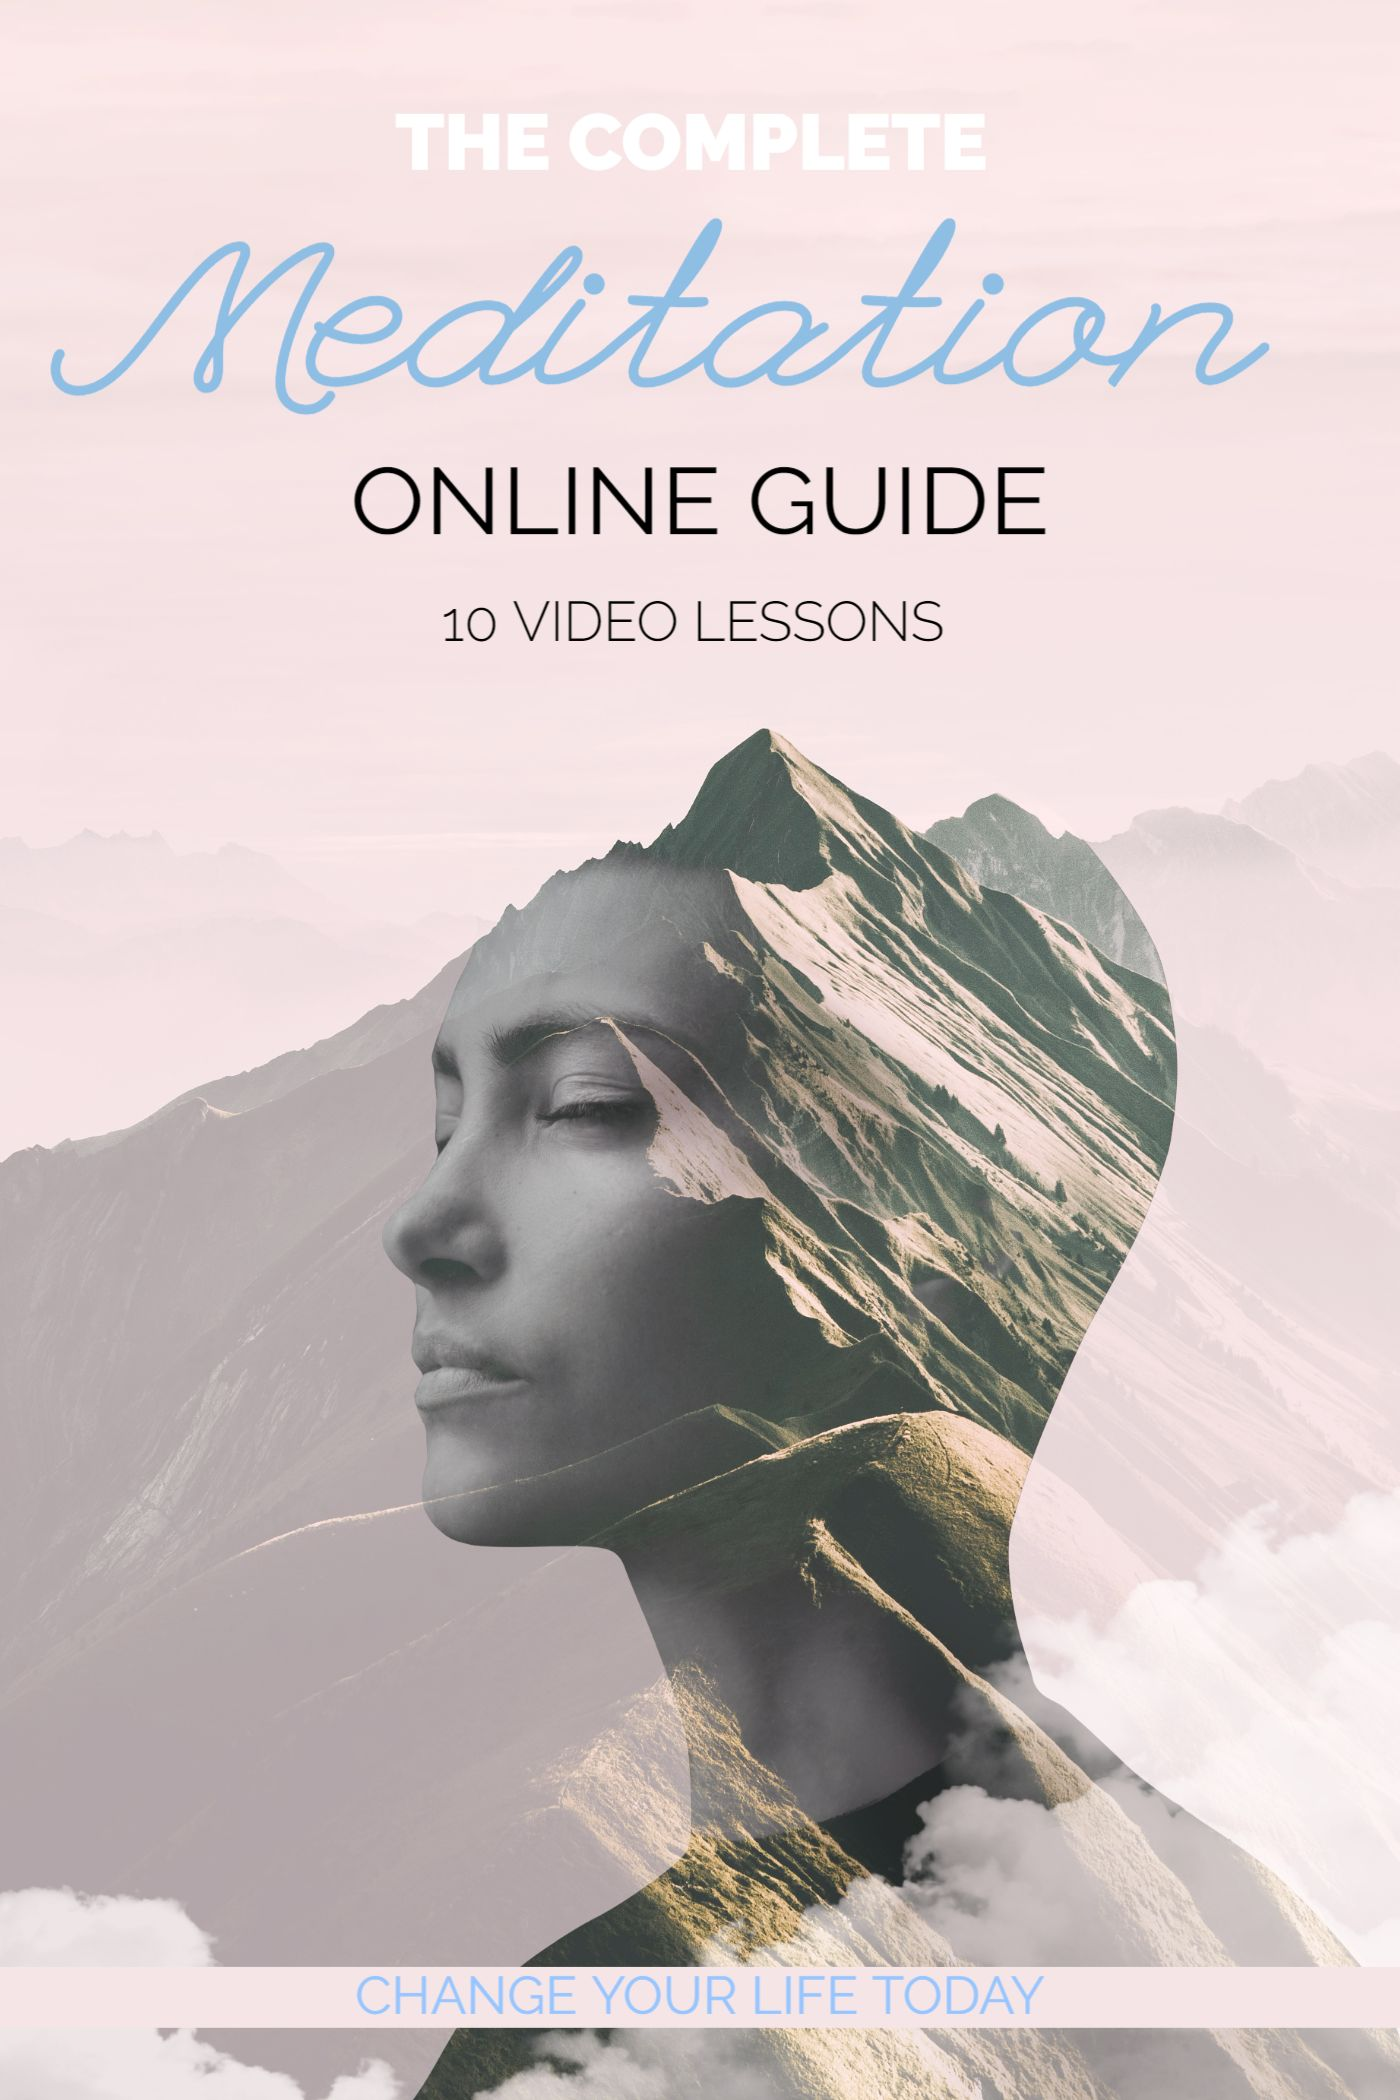 Meditation Online Course Book Cover Template